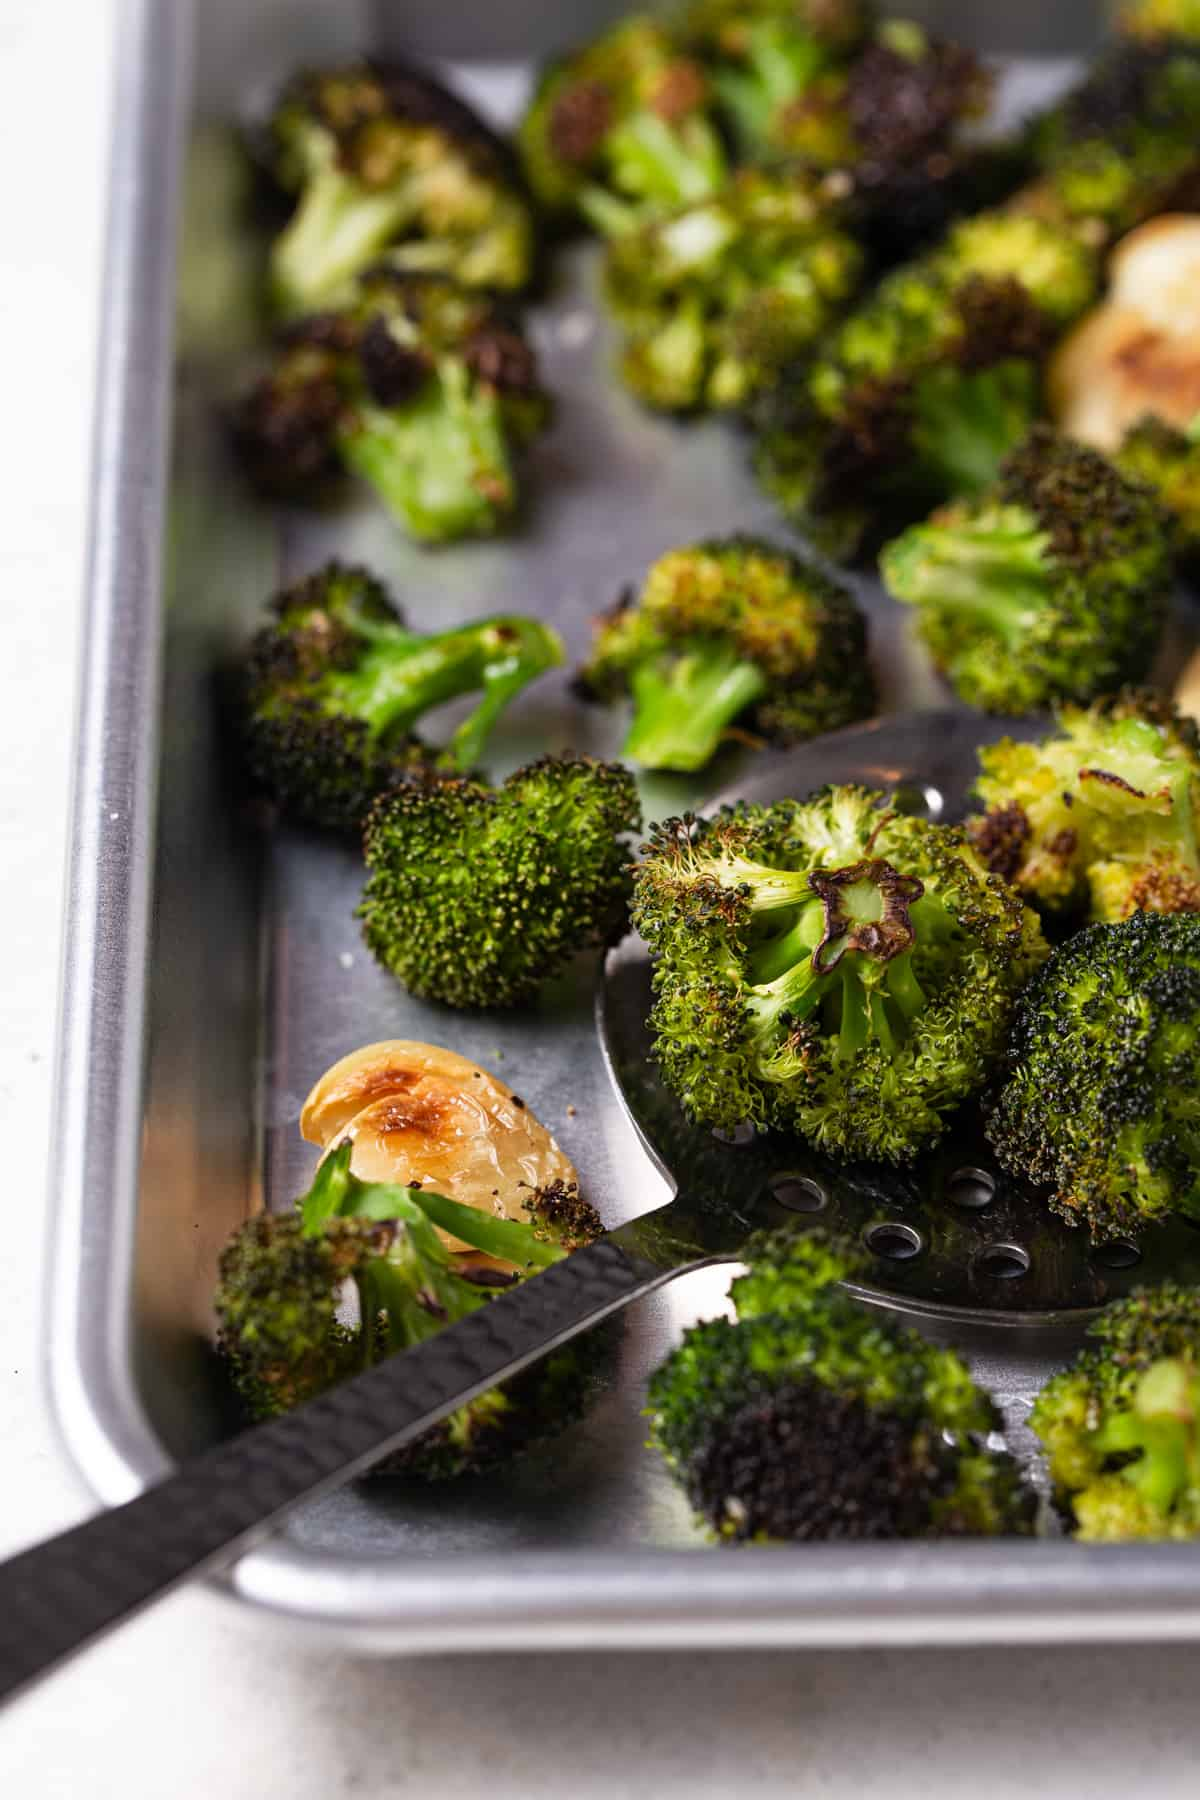 Baked broccoli on a sheet pan with serving spoon.